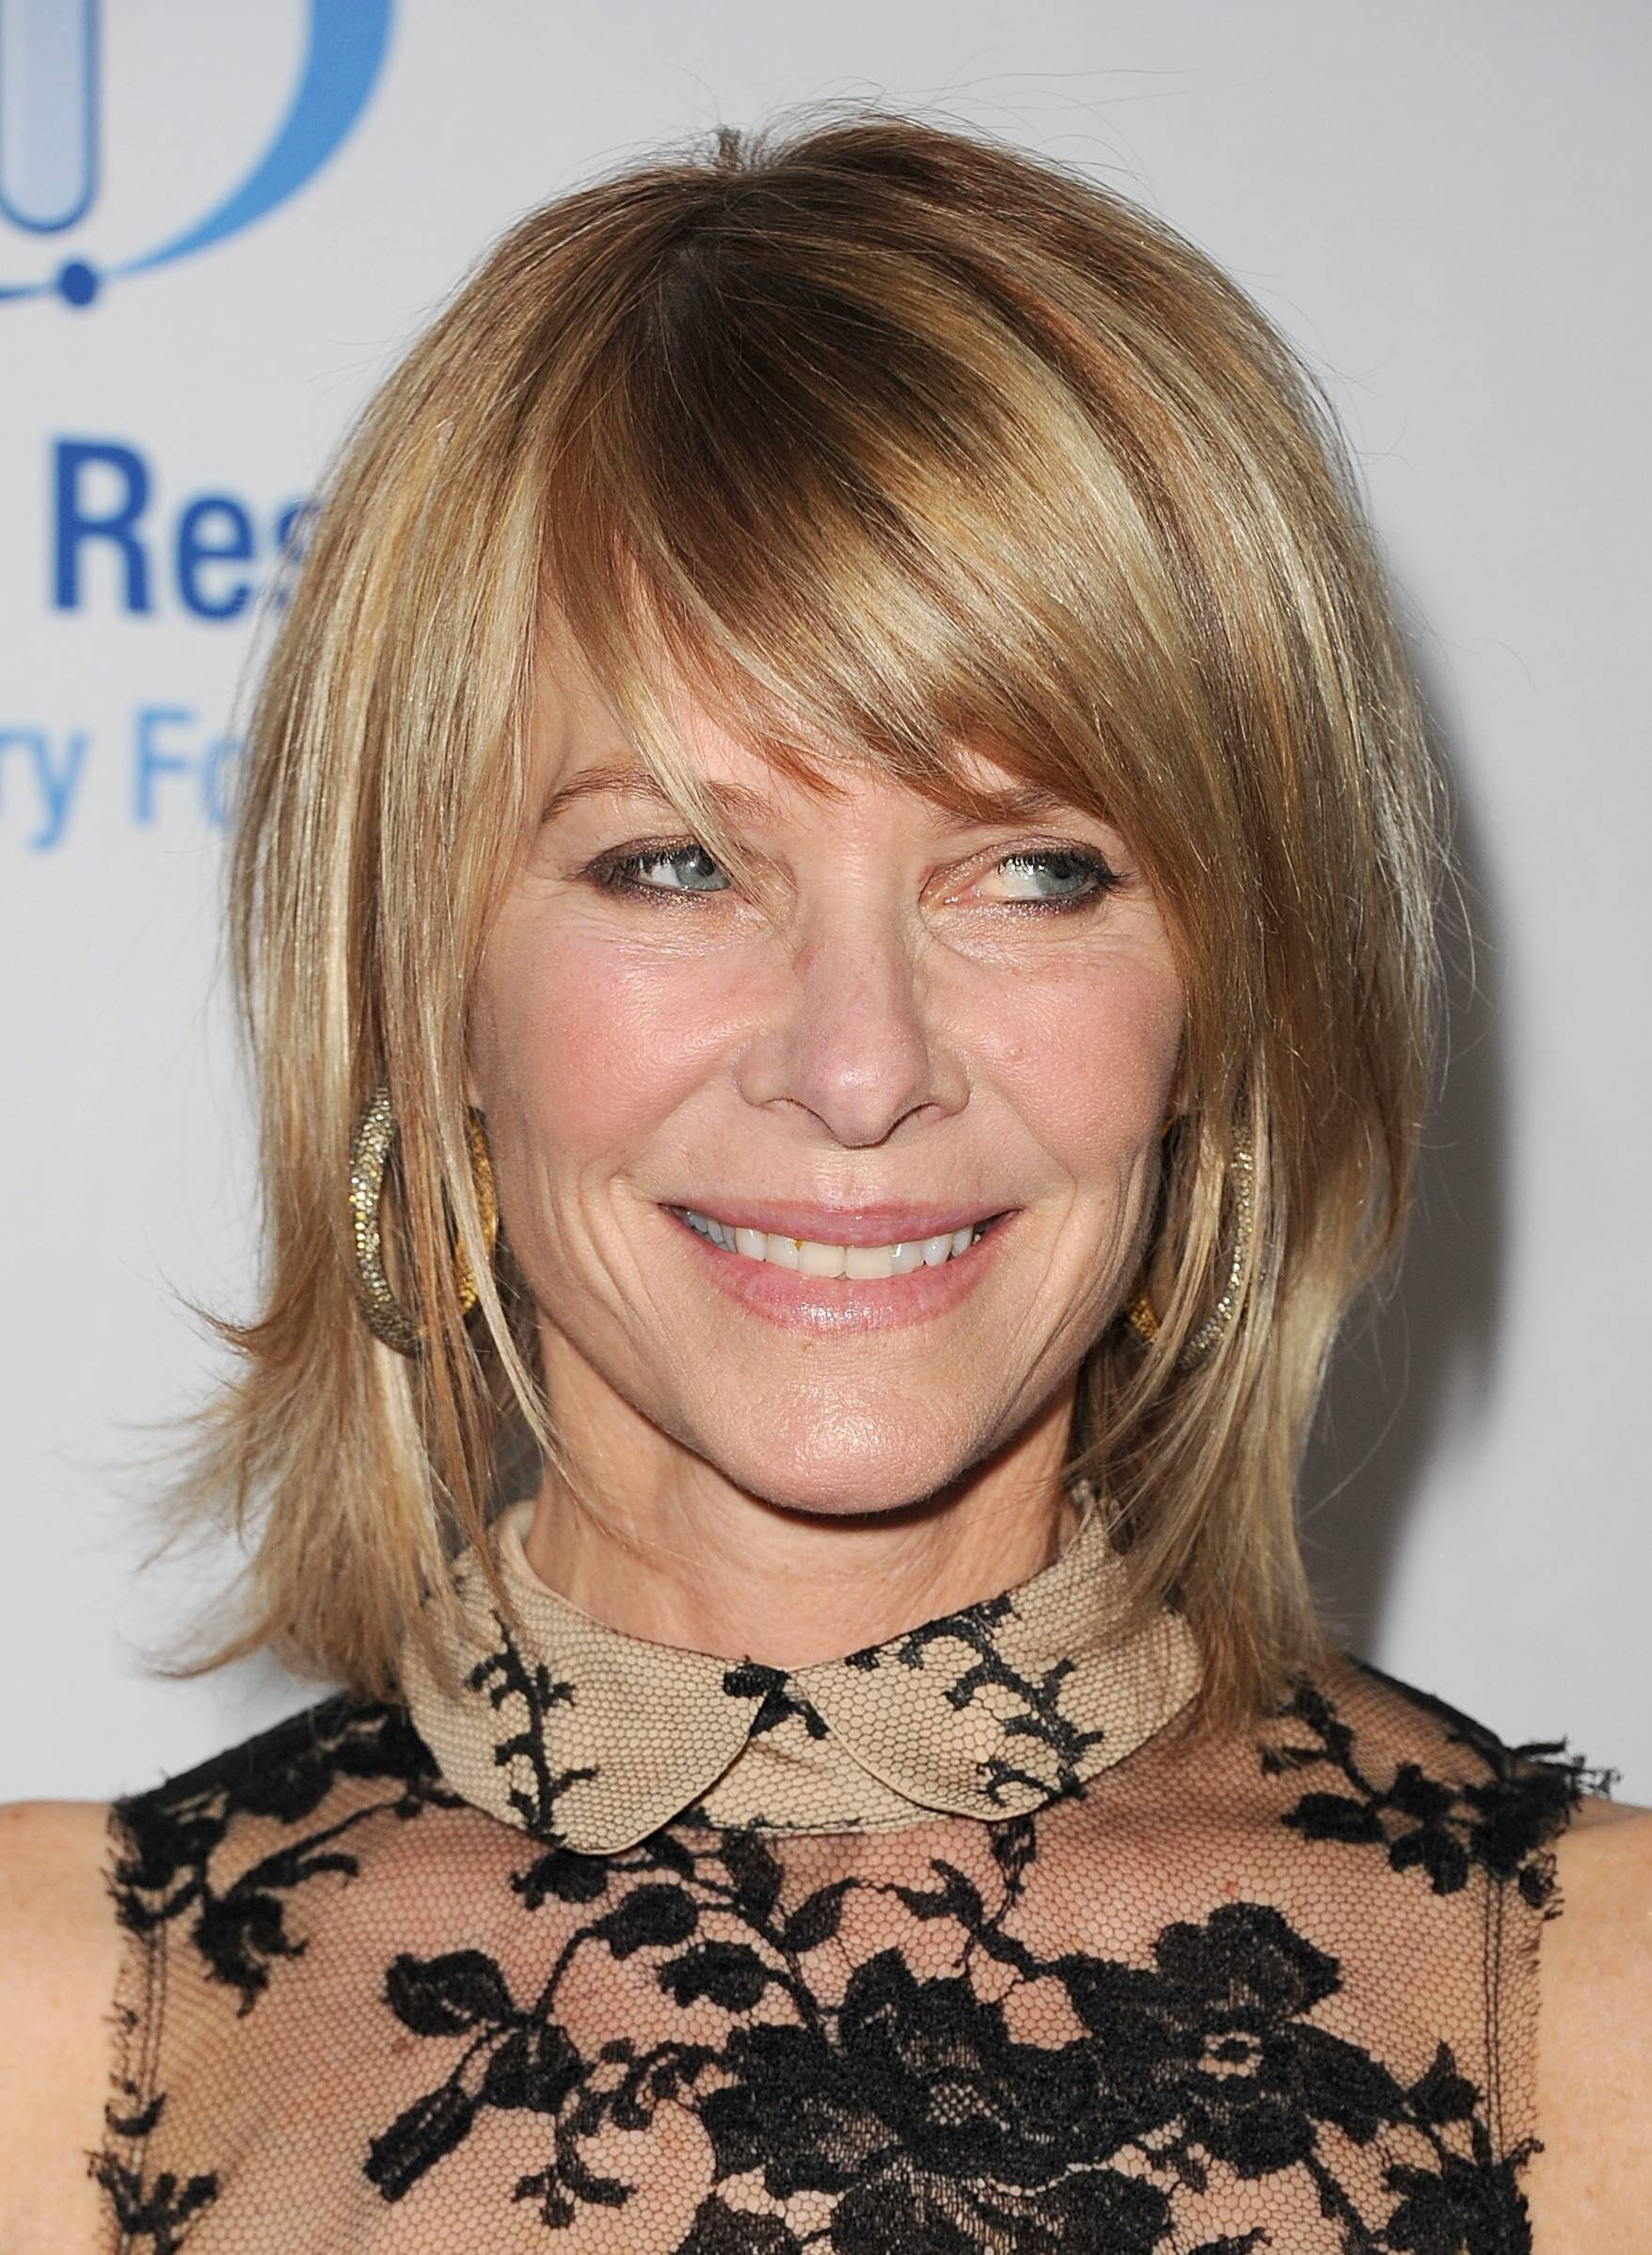 of Bob Hairstyles For Women Over 50